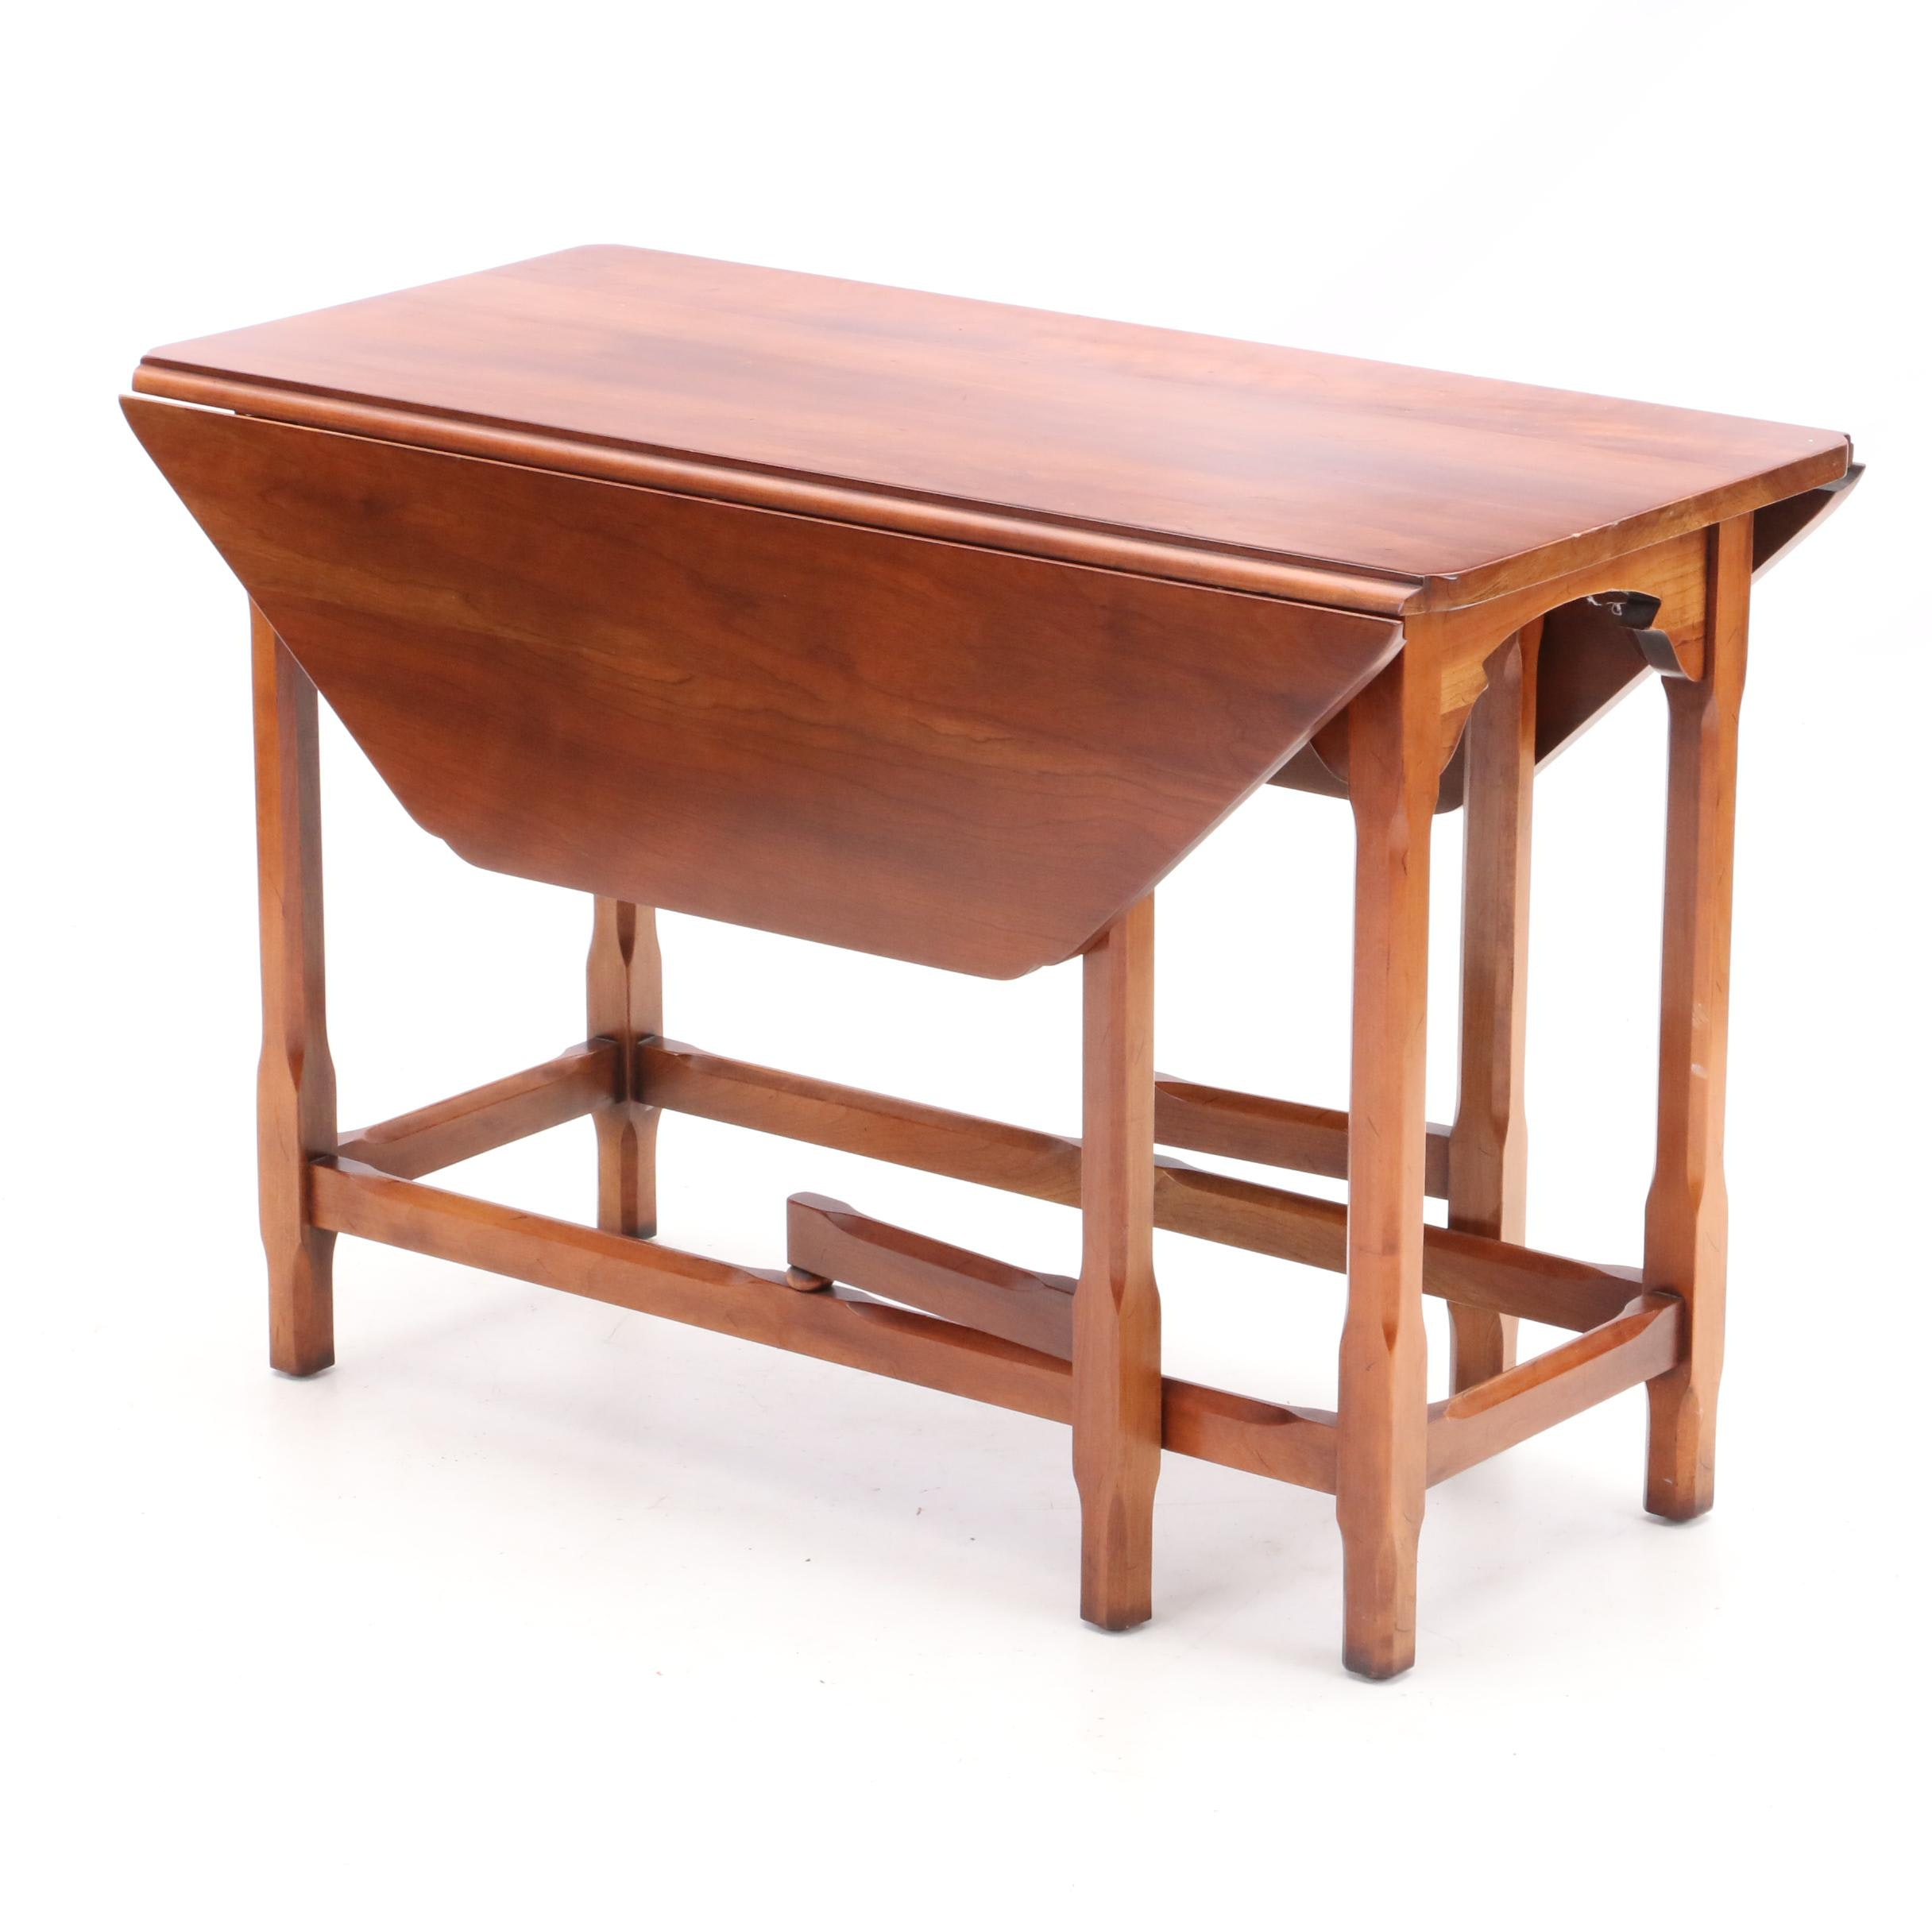 Statten Furniture Cherry Drop Leaf Coffee Table with Gate Legs